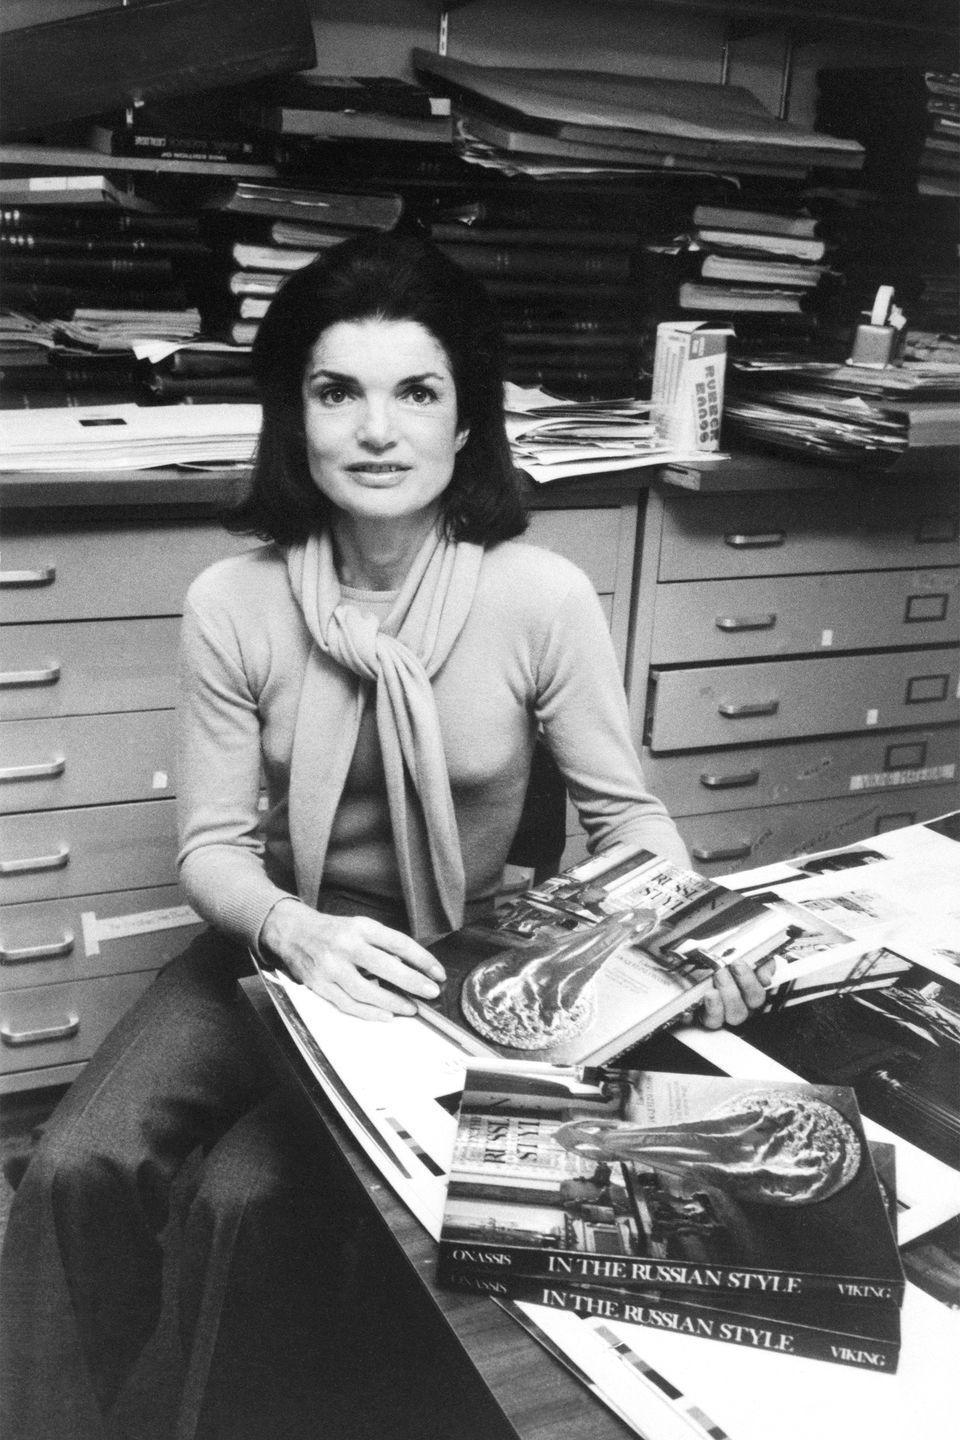 <p>That working-woman style was just as chic as you would imagine. Here is Jackie in her office at Viking Press wearing trousers and a sweater with neck wrap detail that someone needs to put back in production asap.</p>